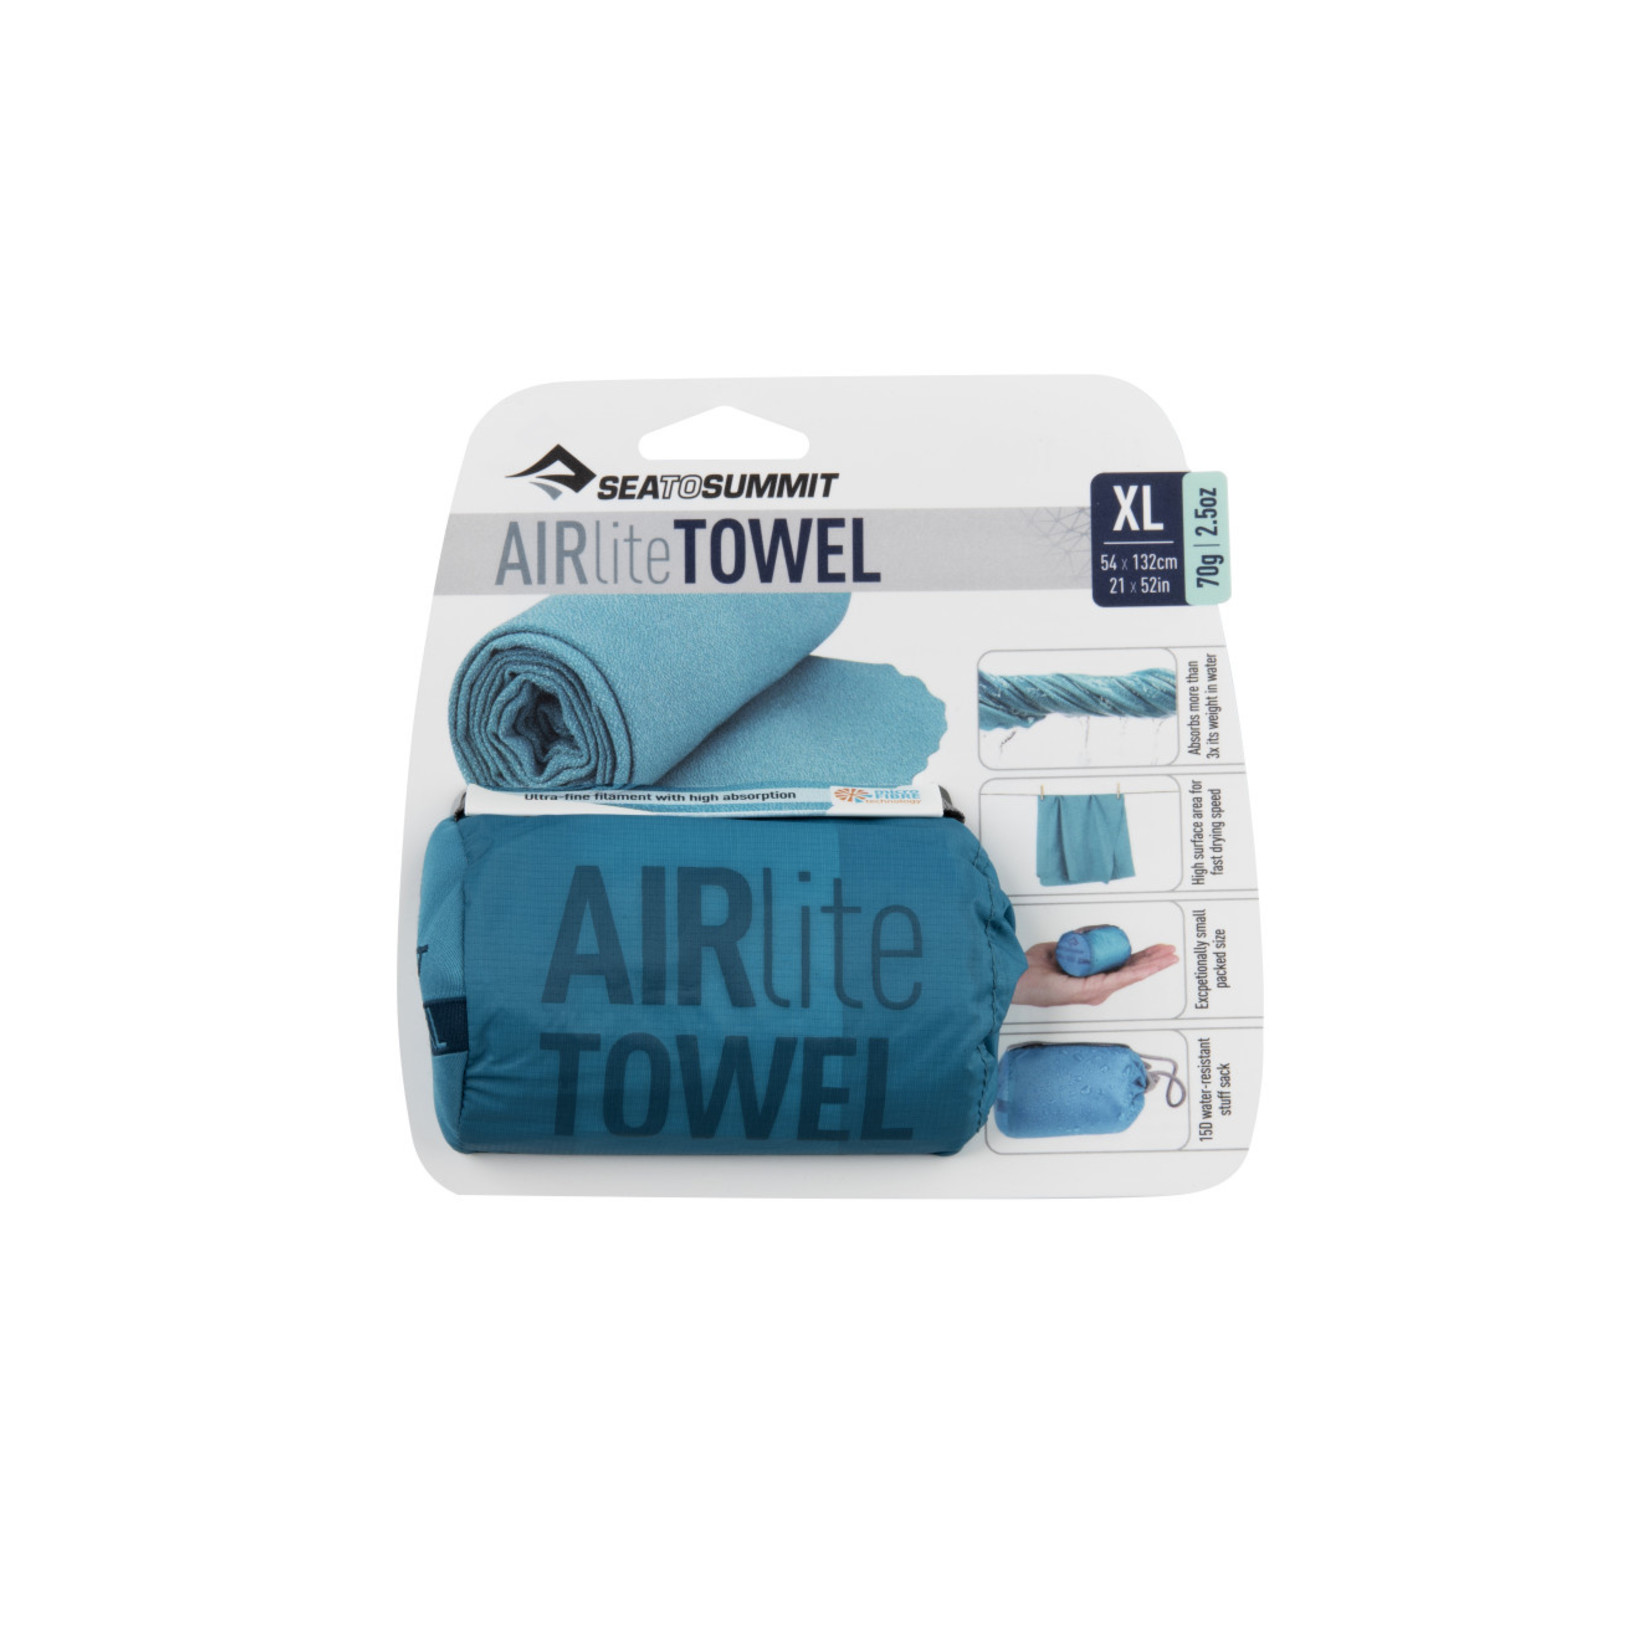 Sea to Summit Sea to Summit, Airlite Towel Large Pacific Blue